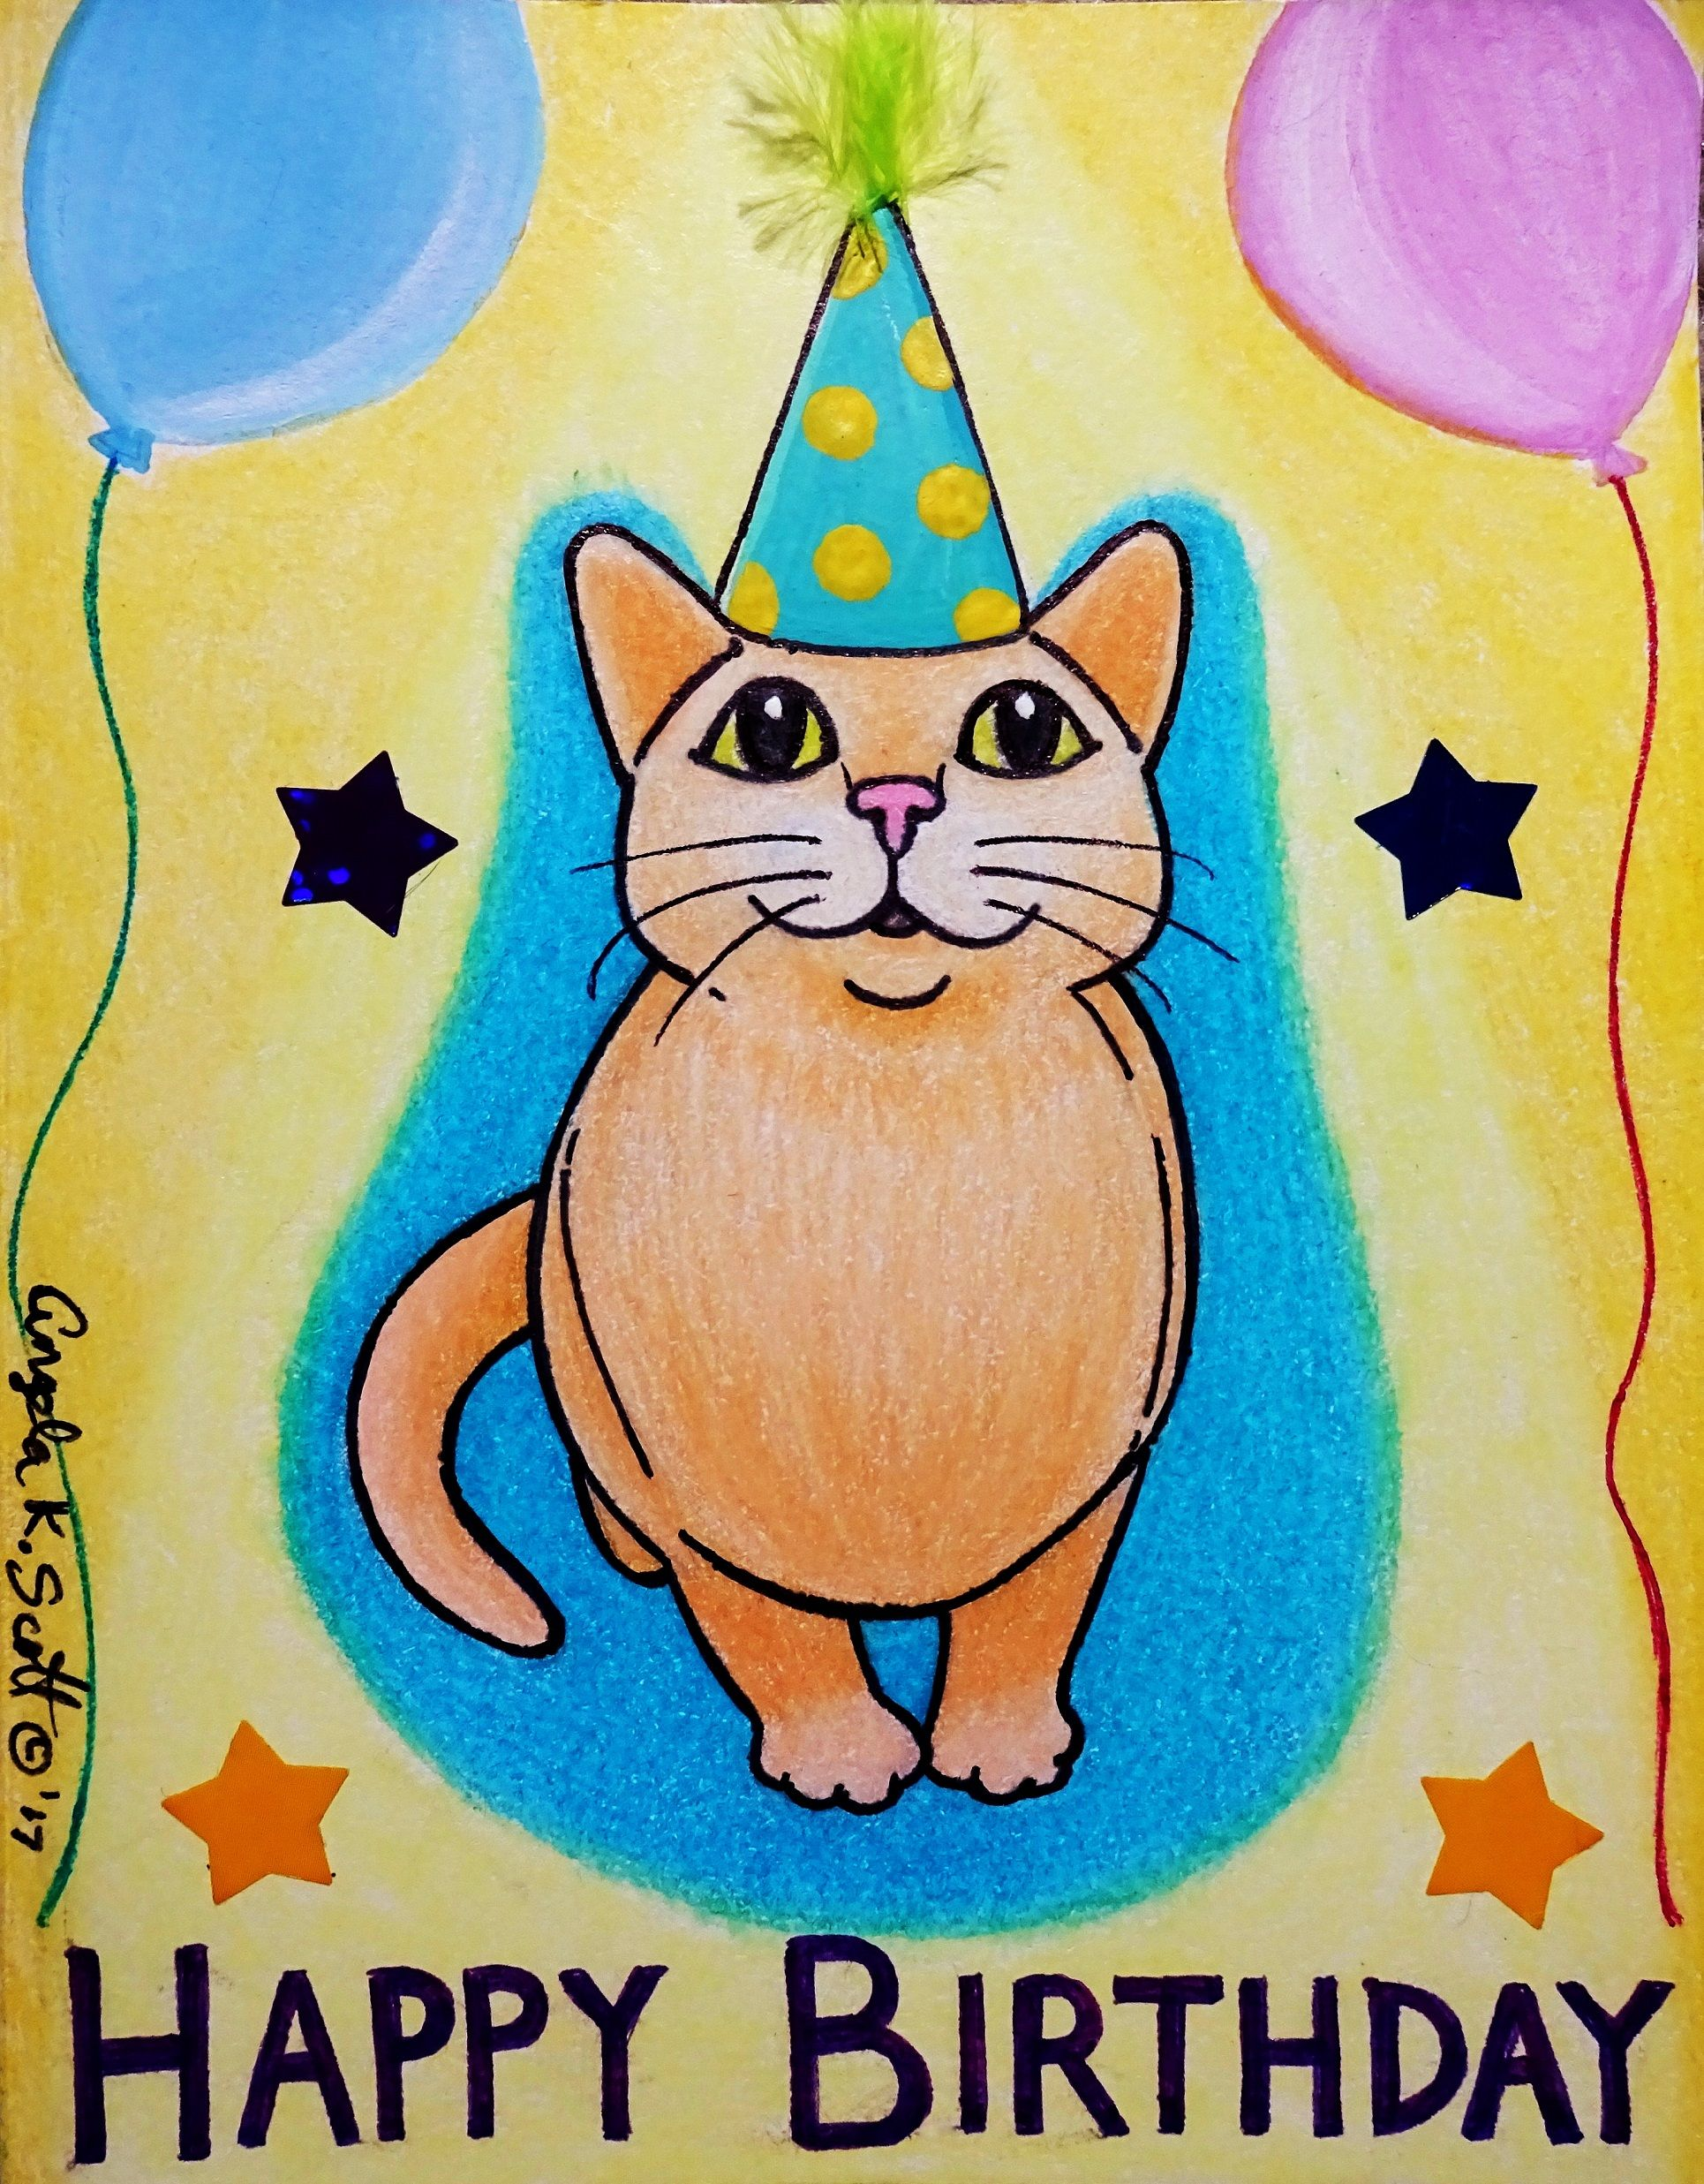 Happy Birthday Cat My Artwork Of A Bday Hat Wearing